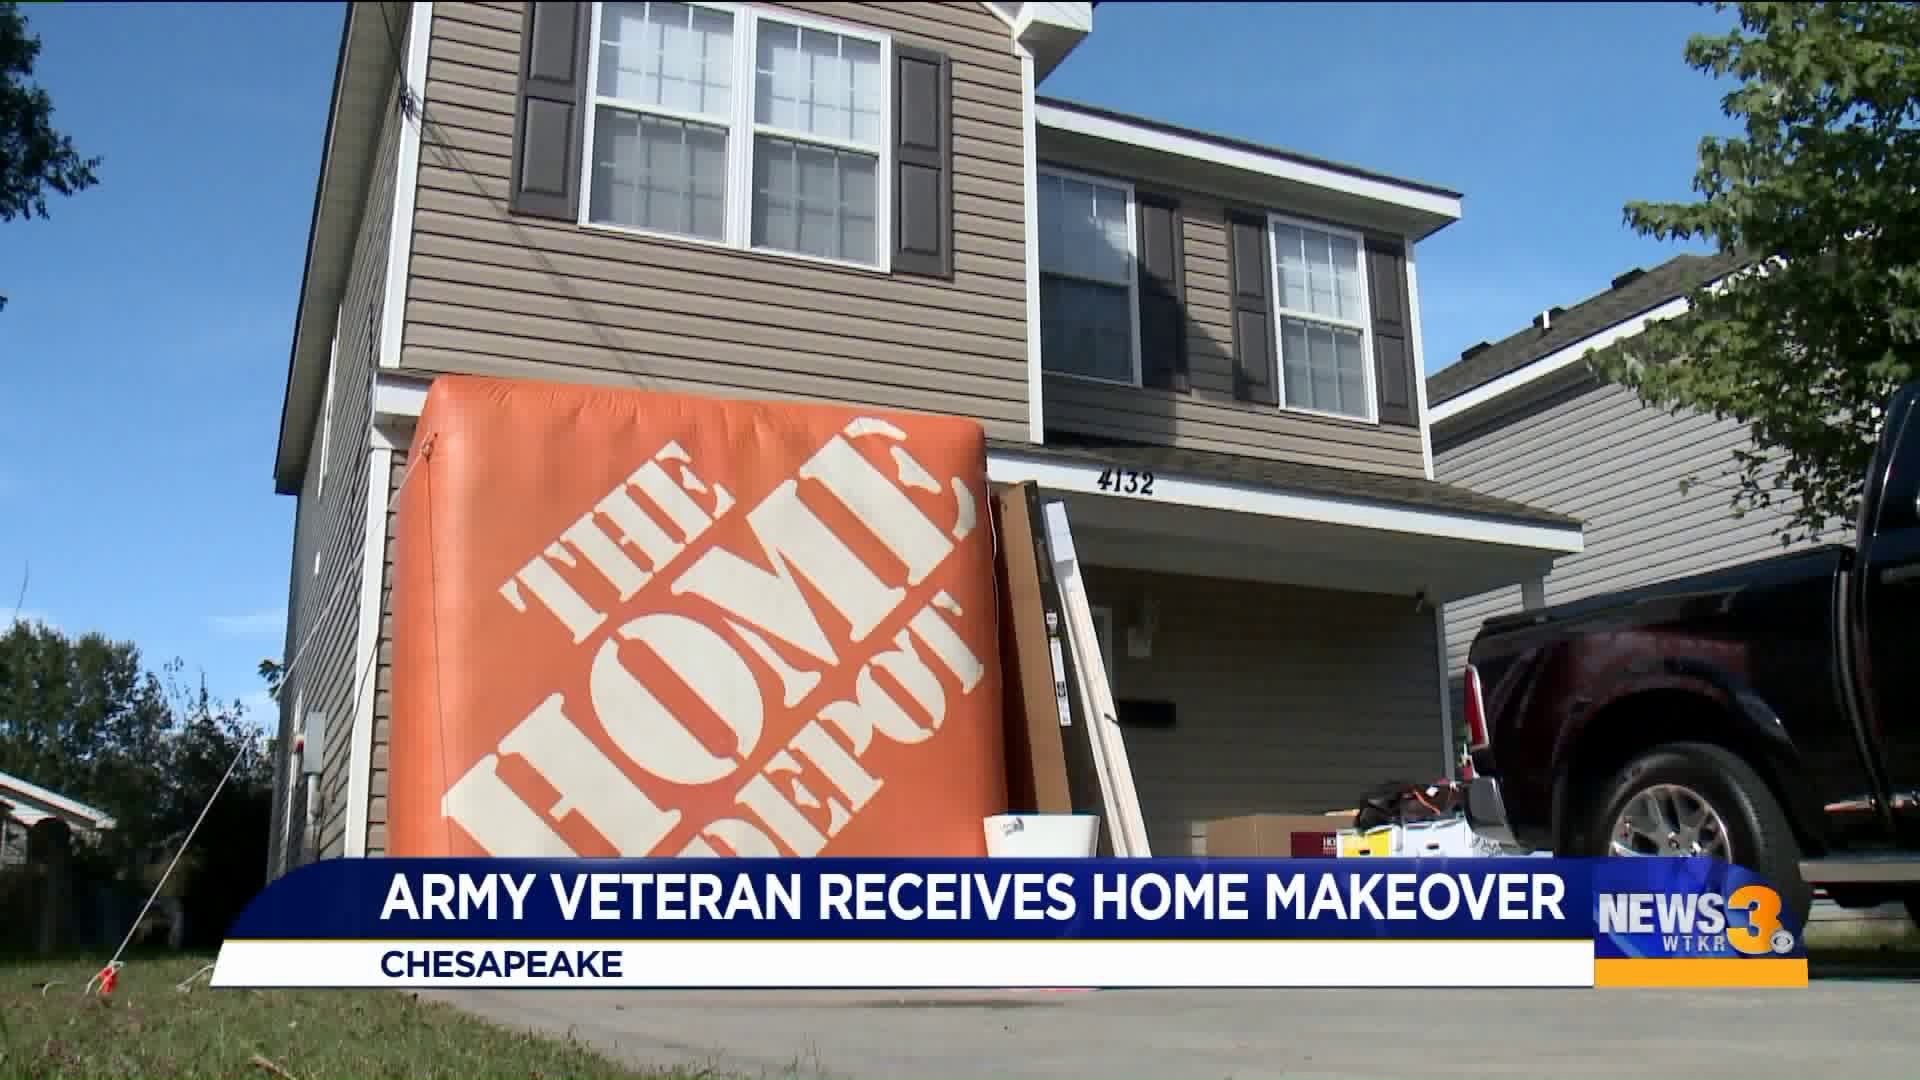 Chesapeake Army Vet Gets 10k Renovation As Home Depot Works To Serve Veterans